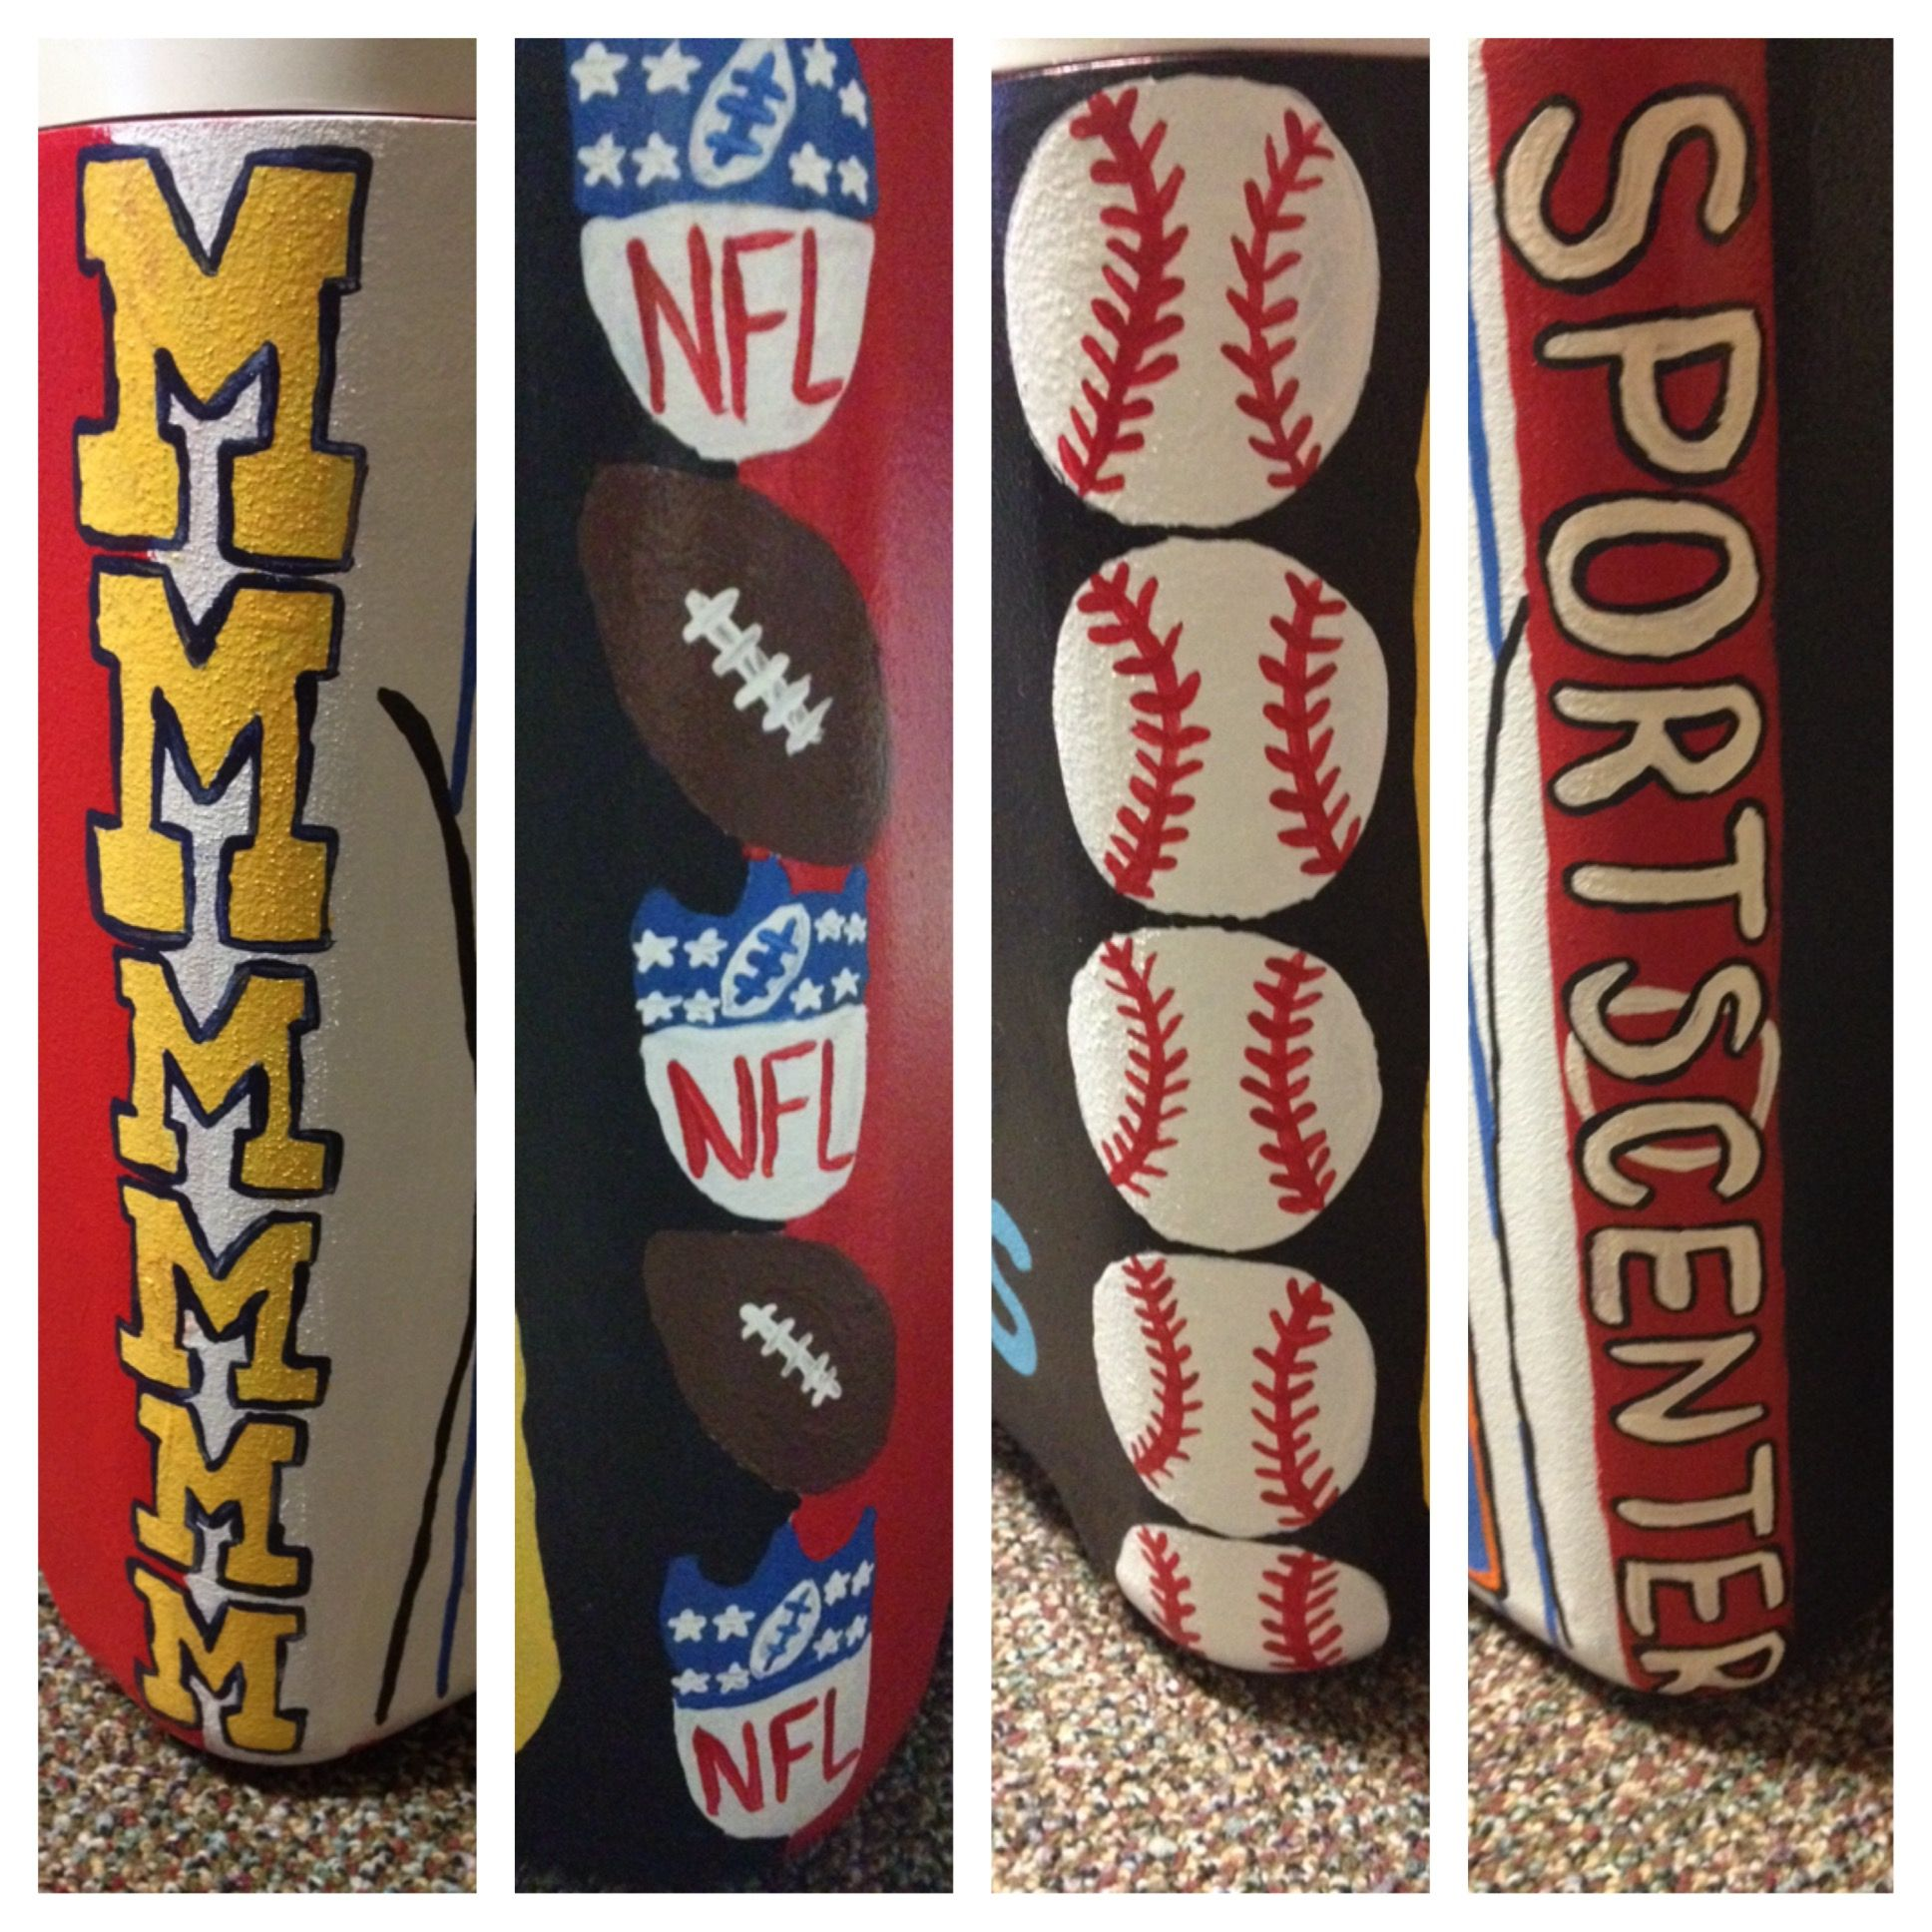 Painted Cooler Edges Corners Nfl Symbol Baseball Sports Center Michigan Cooler Painting Fraternity Coolers Frat Coolers